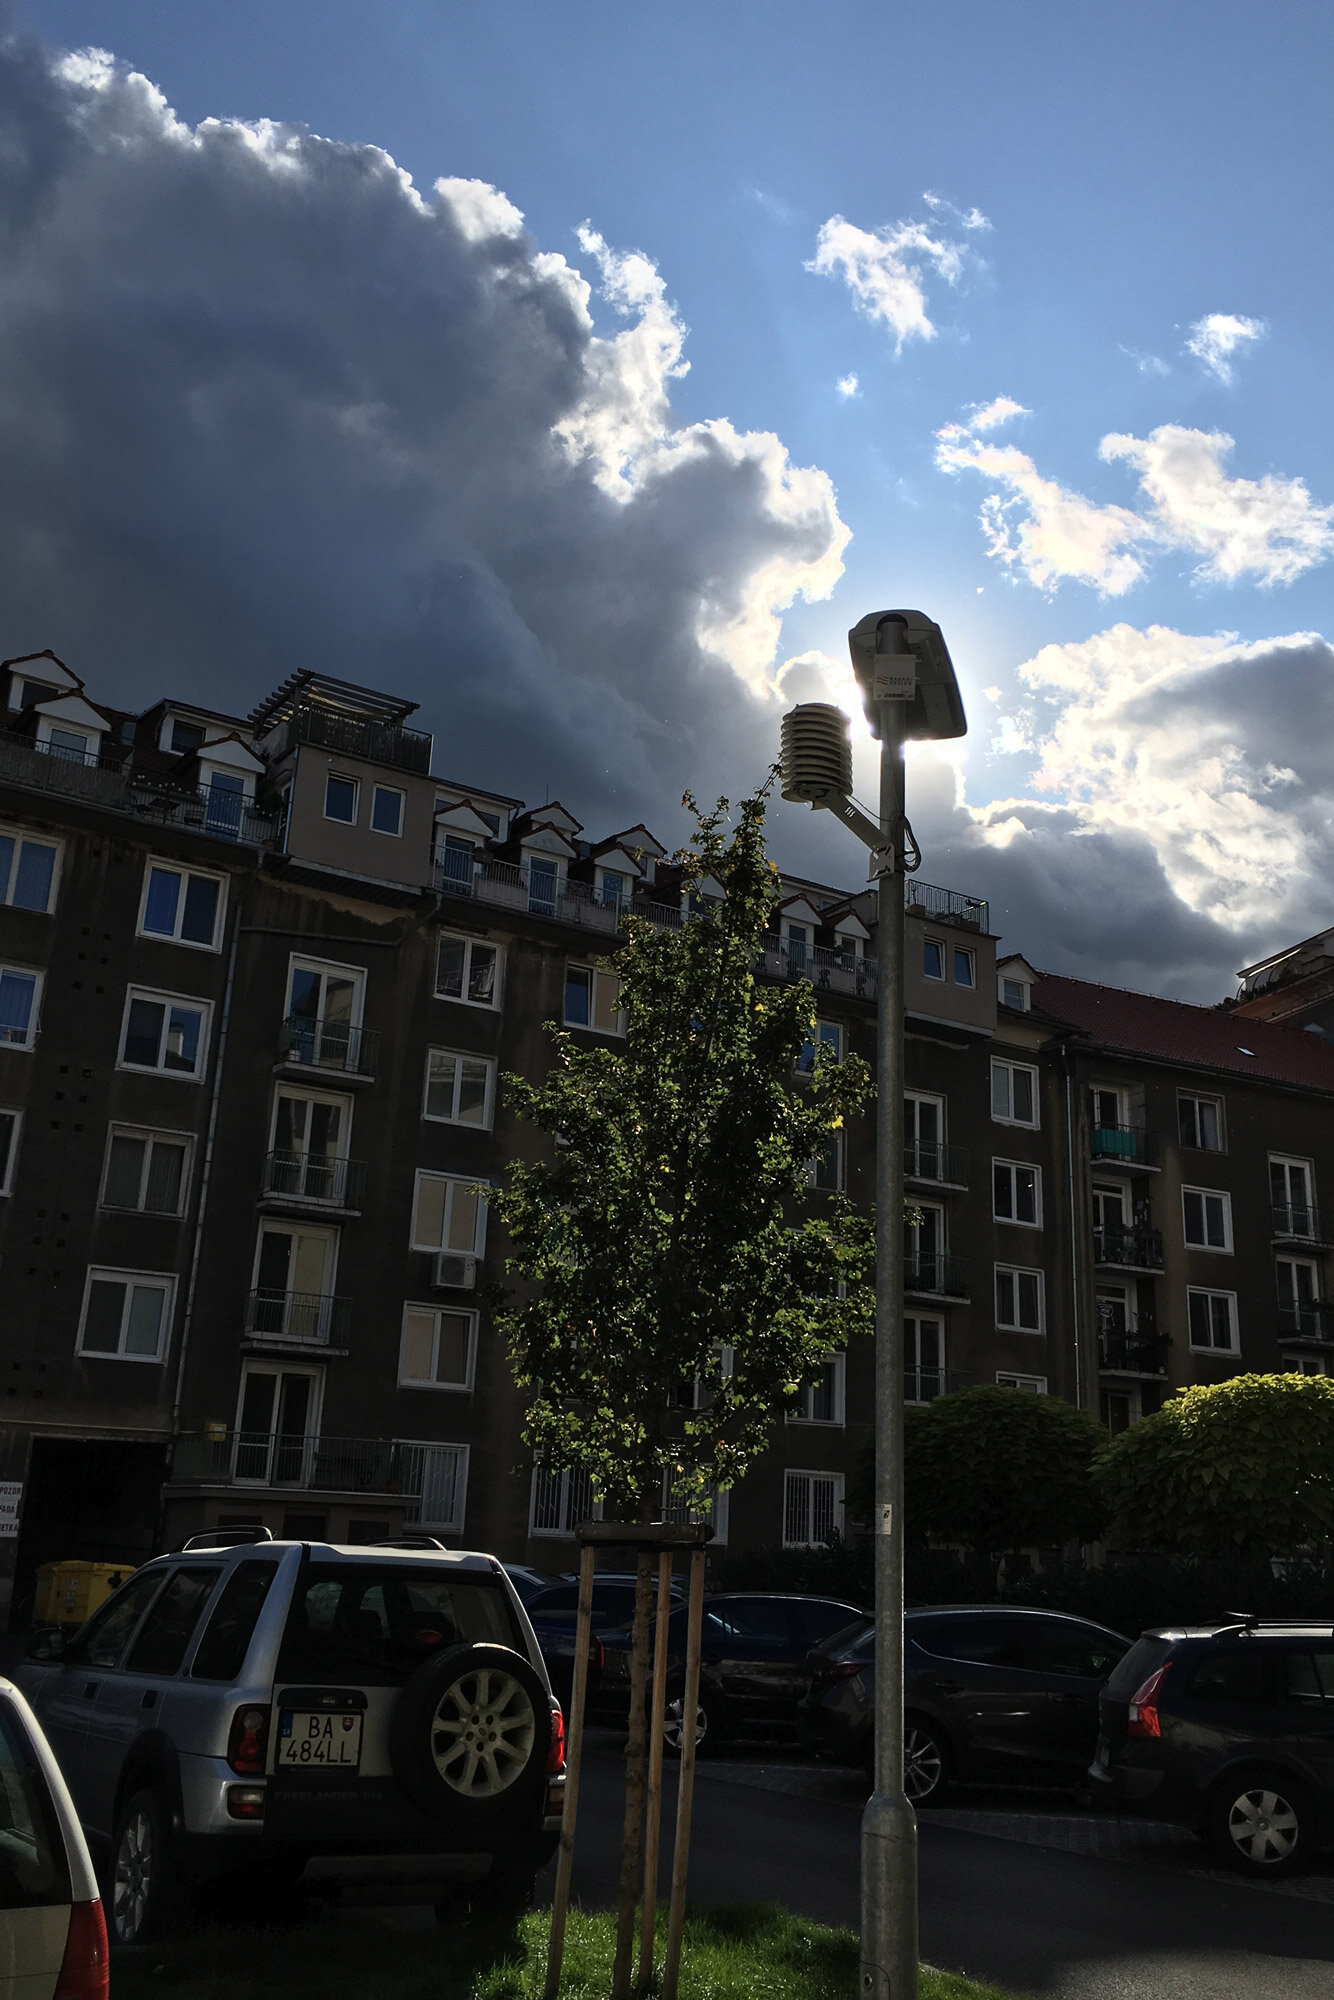 MeteoHelix IoT Pro weather station on smart street lighting